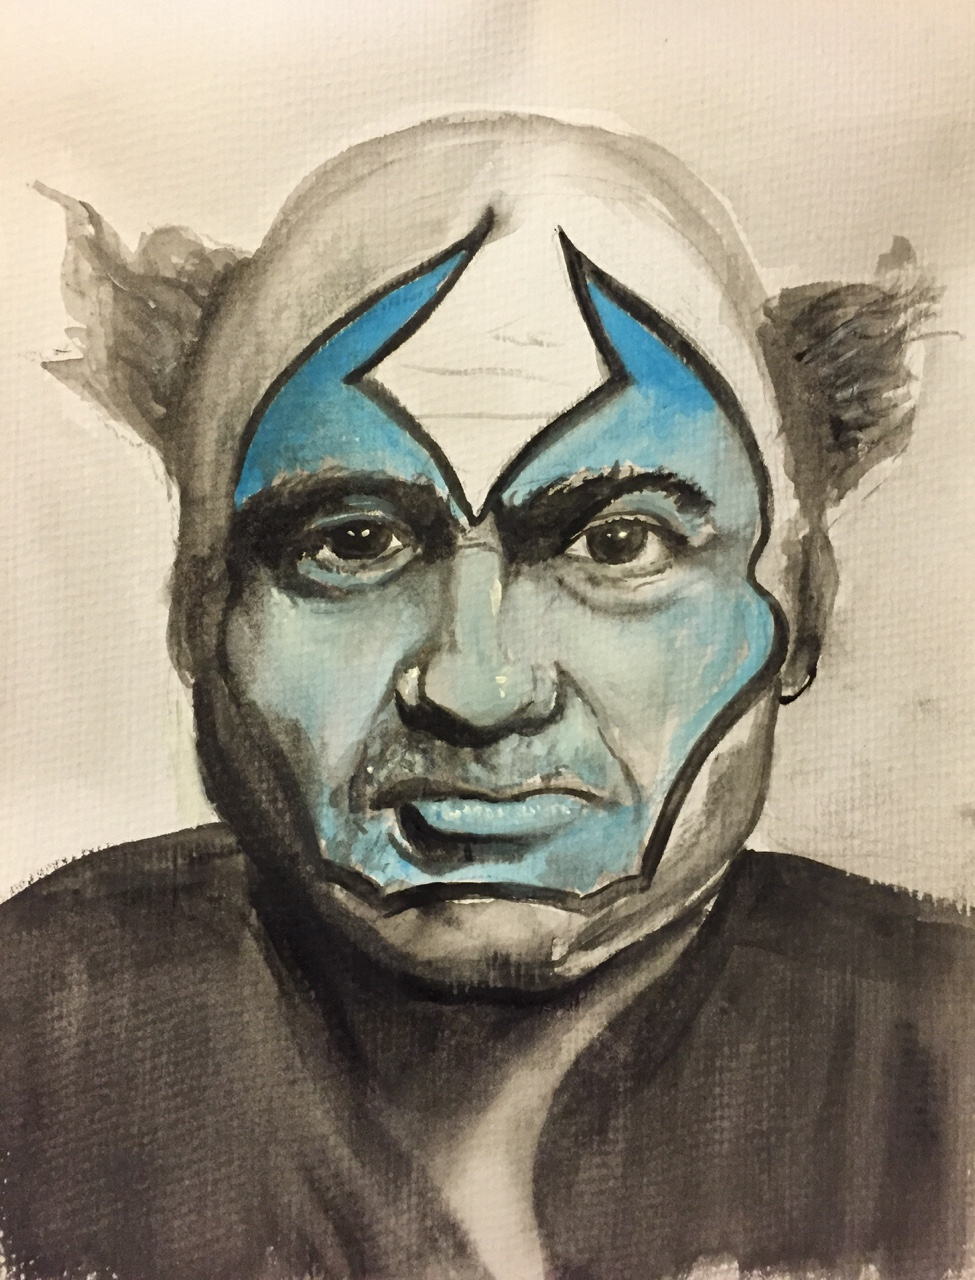 This is a portrait I did of Danny DeVito as The Violator from the comic Spawn. I always thought he should have played him in the movie.Punch the follow button with your stumpy little fingers!